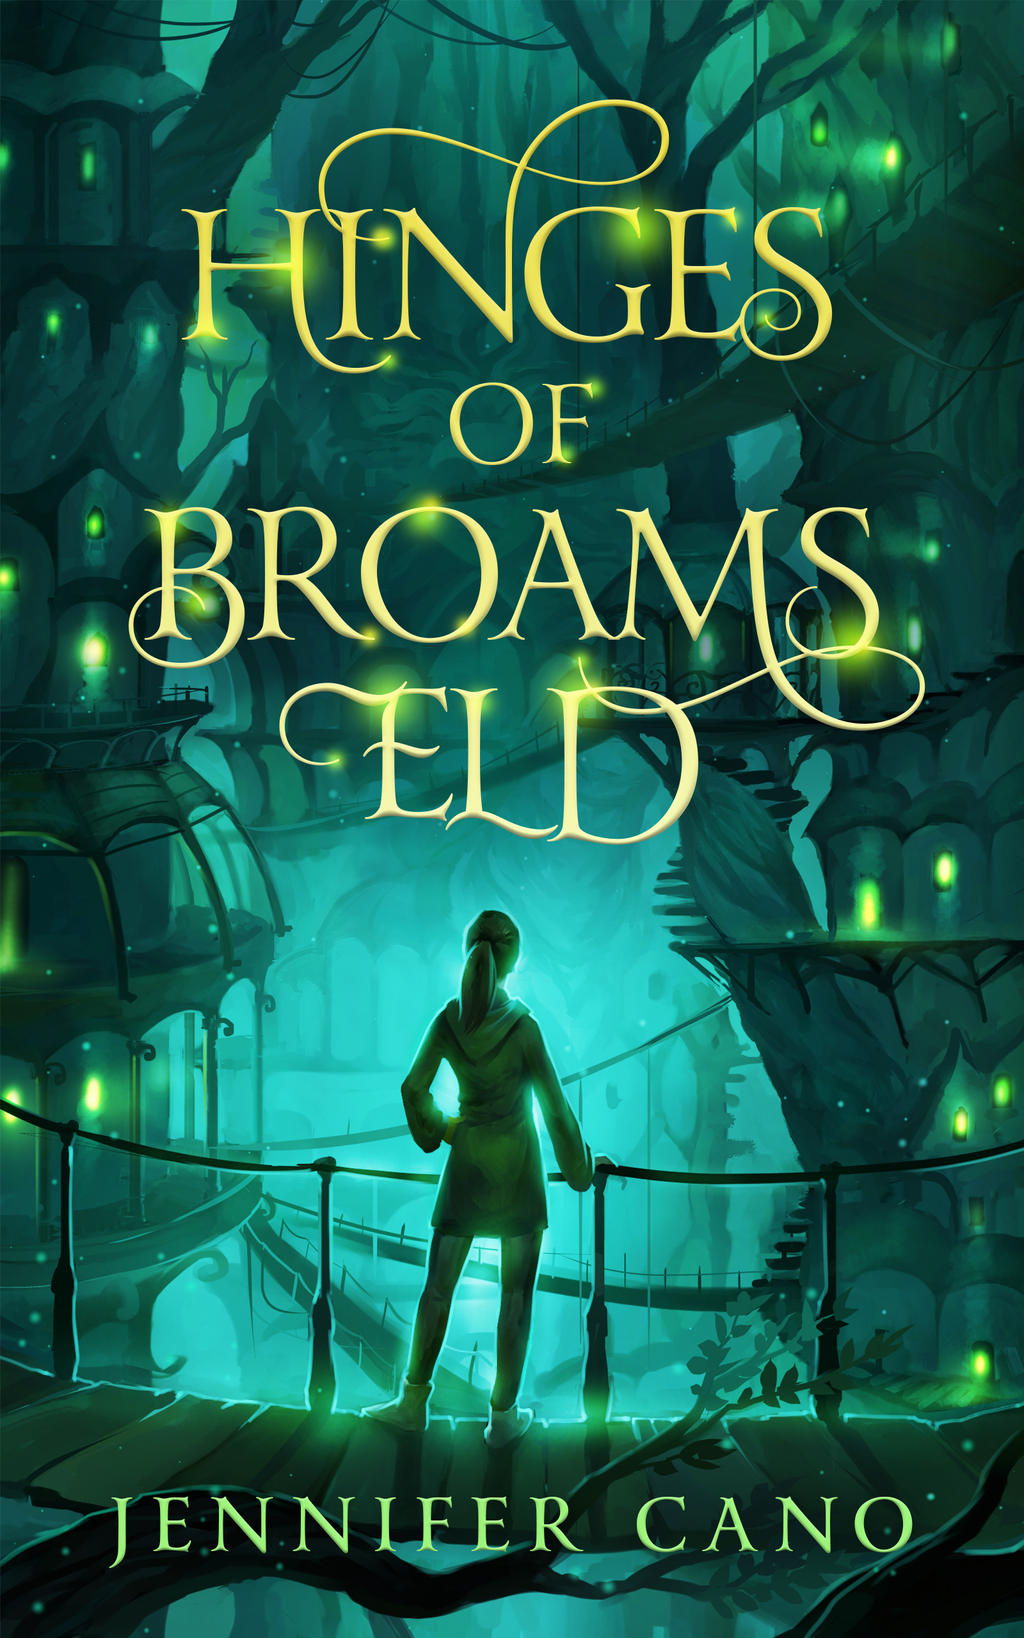 Book Cover Design Deviantart : Book cover design for hinges of broams eld by ebooklaunch